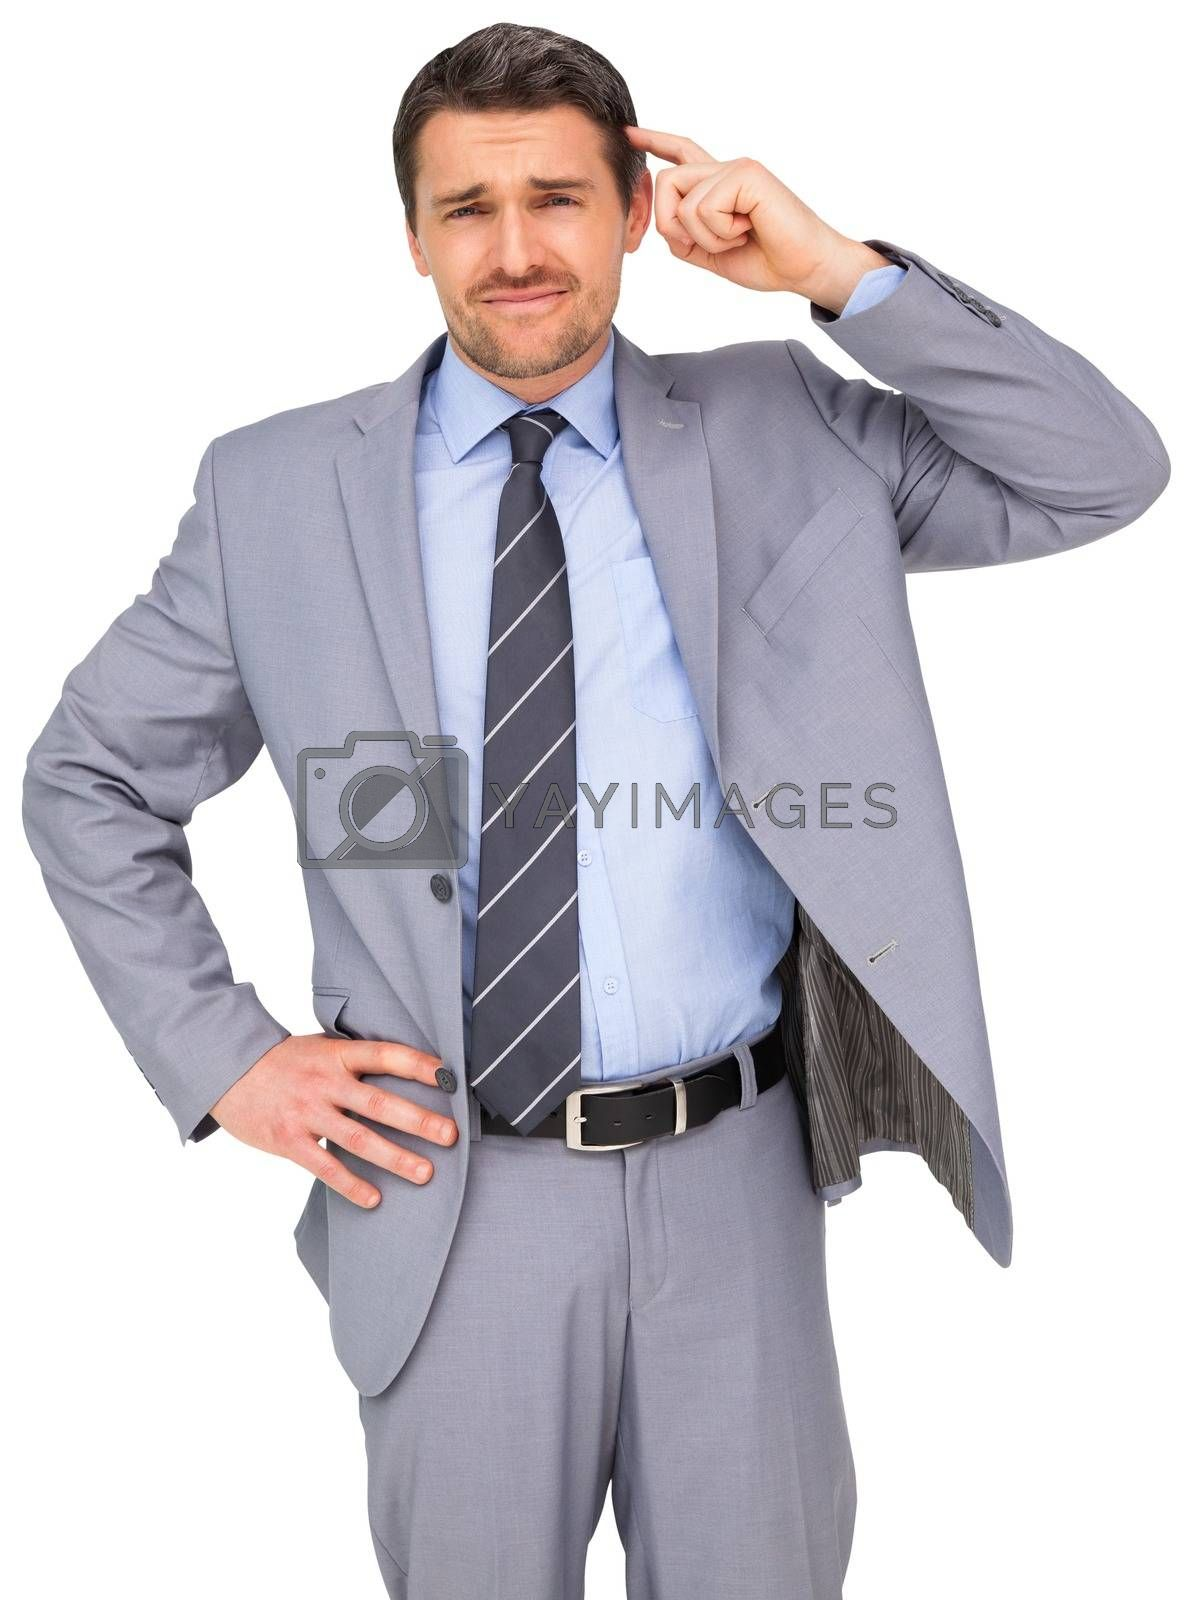 Royalty free image of Thinking businessman in grey suit by Wavebreakmedia